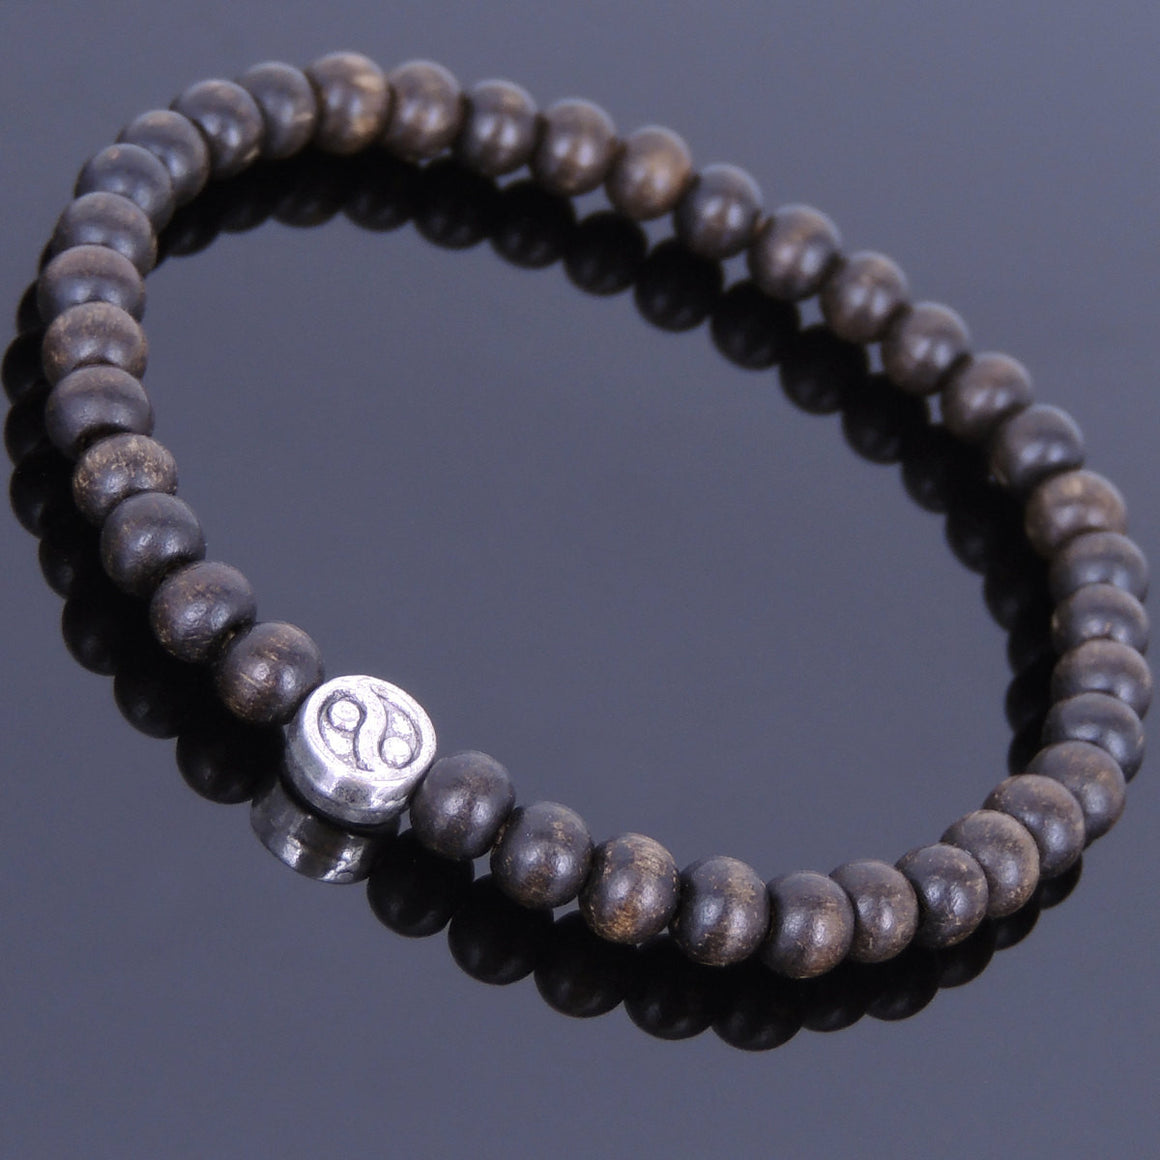 Mala Agarwood Bracelet for Prayer & Meditation with Tibetan Silver Ying Yang Taiji Mala Bead - Handmade by Gem & Silver AWB010